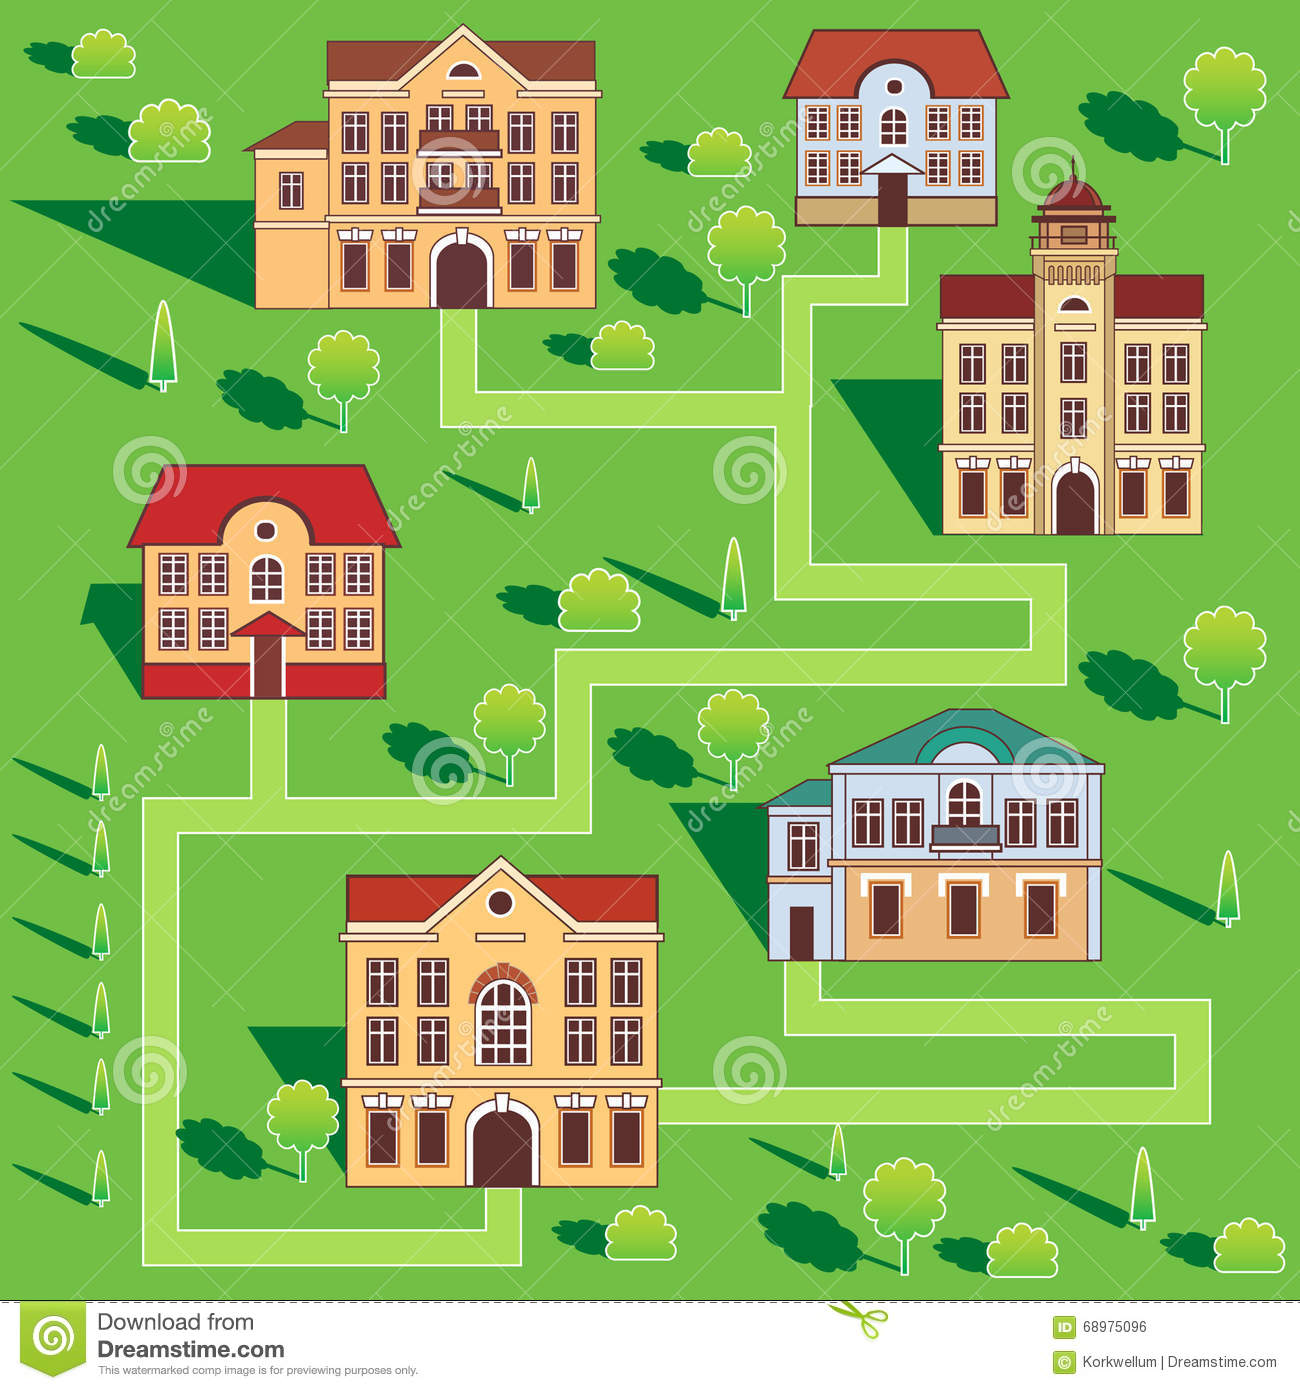 House For Rent Clip Art: Town With Colorful Houses. Seamless Pattern. Vector